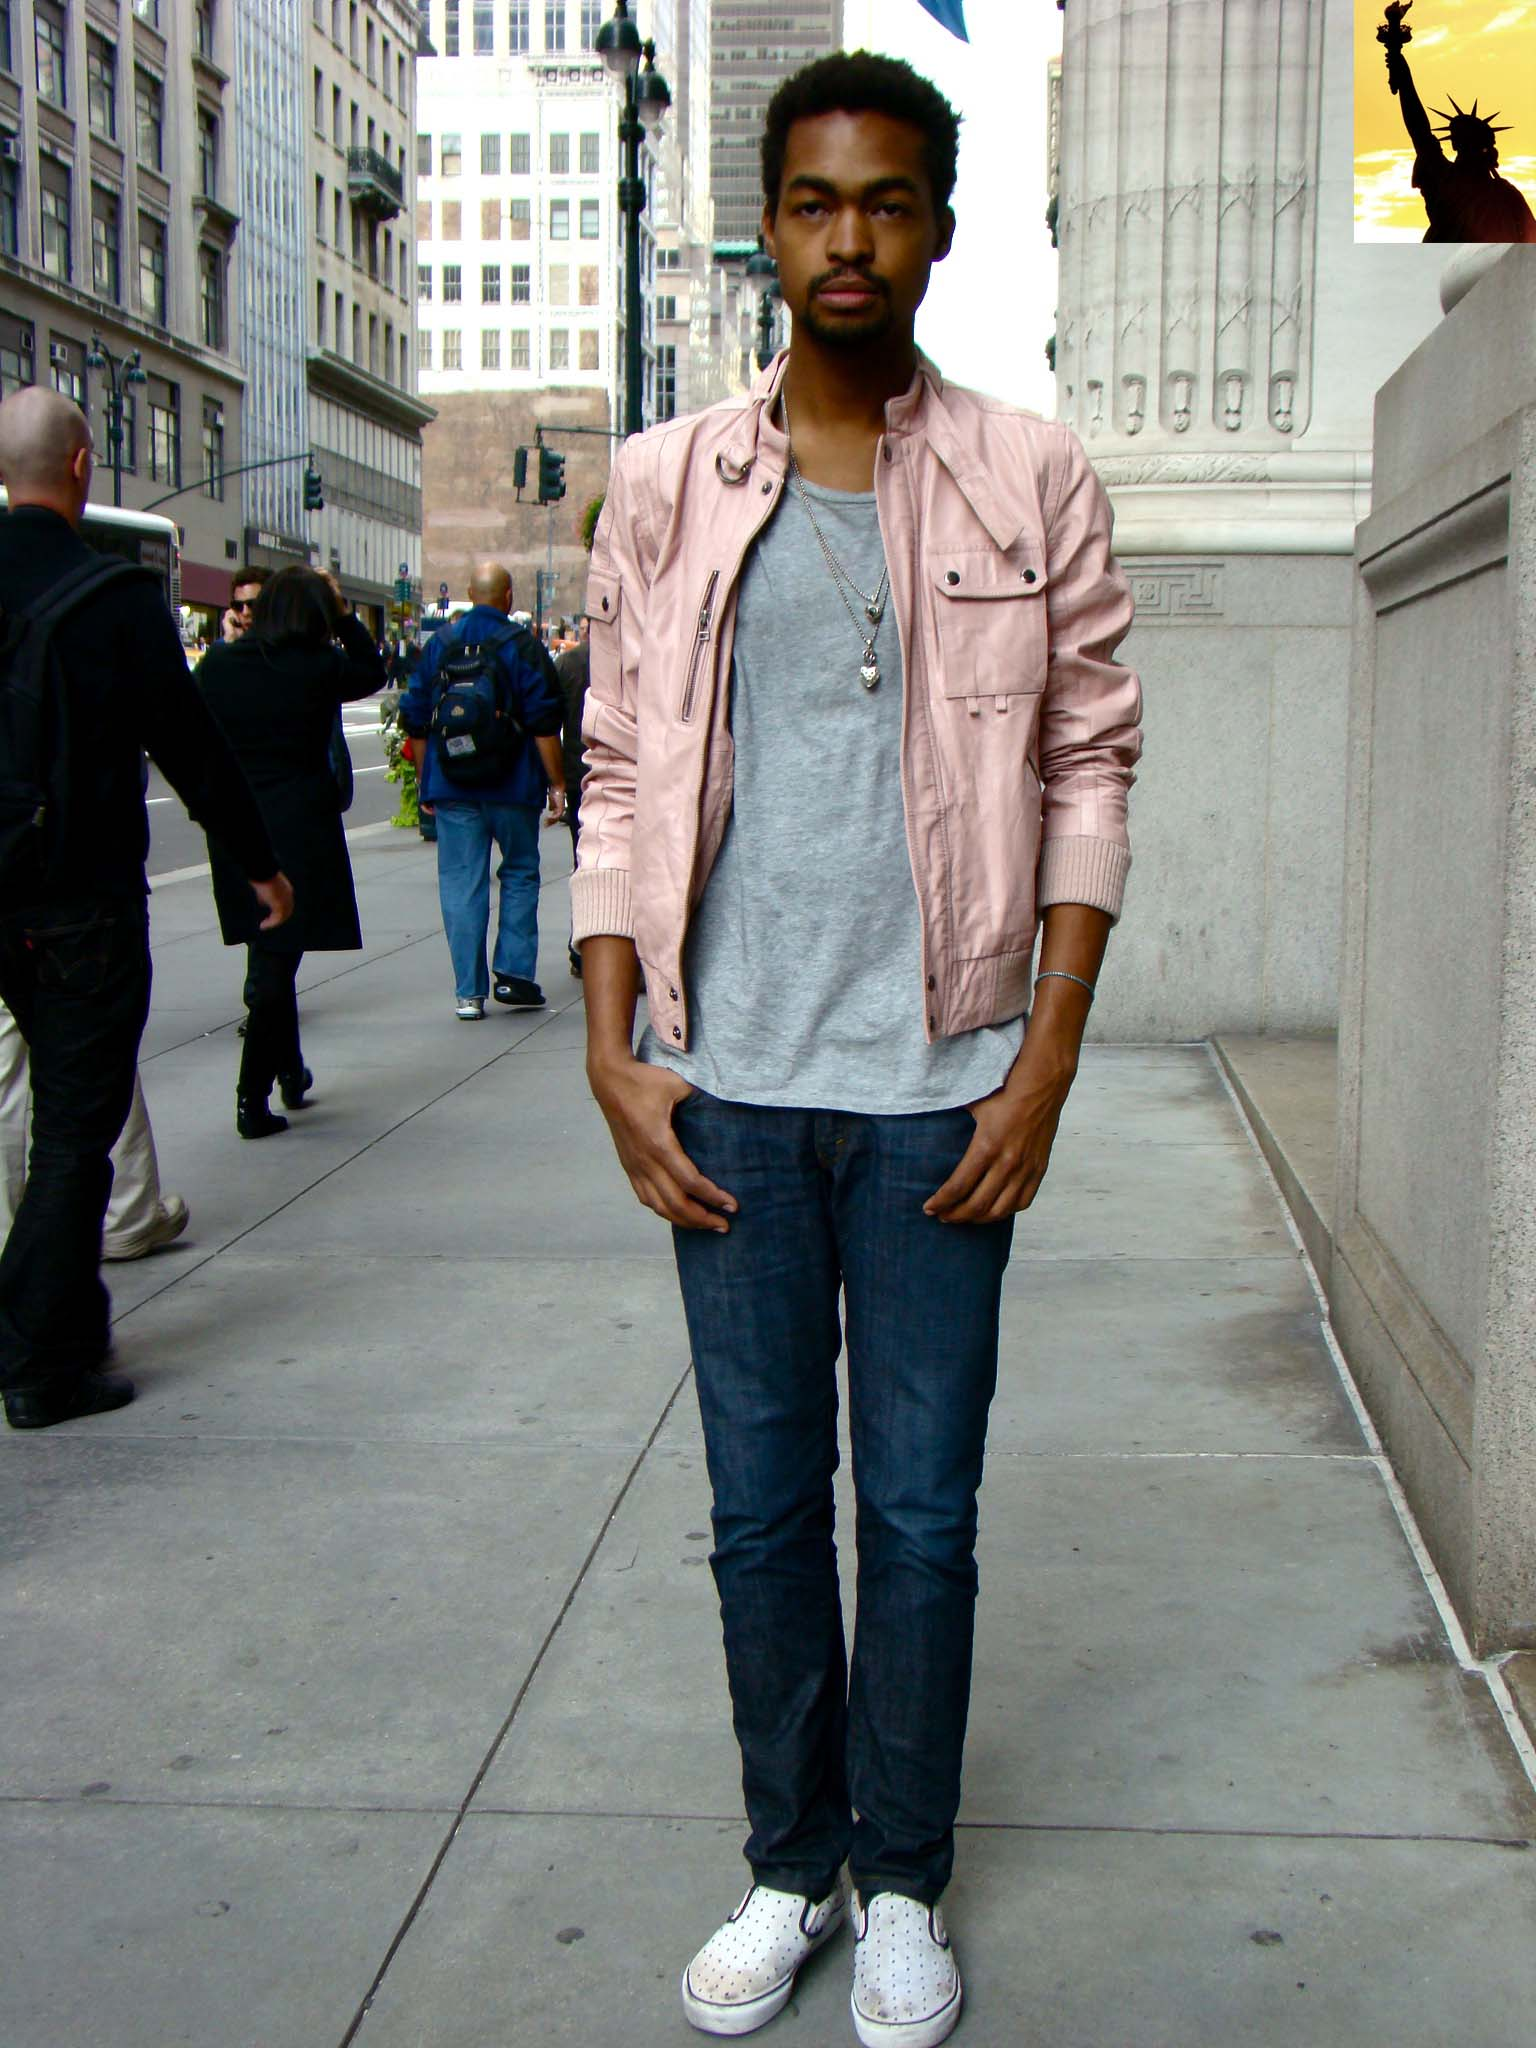 guy-pink-leather-bomber-jacket-jeans-and-grey-shirt.jpg ...